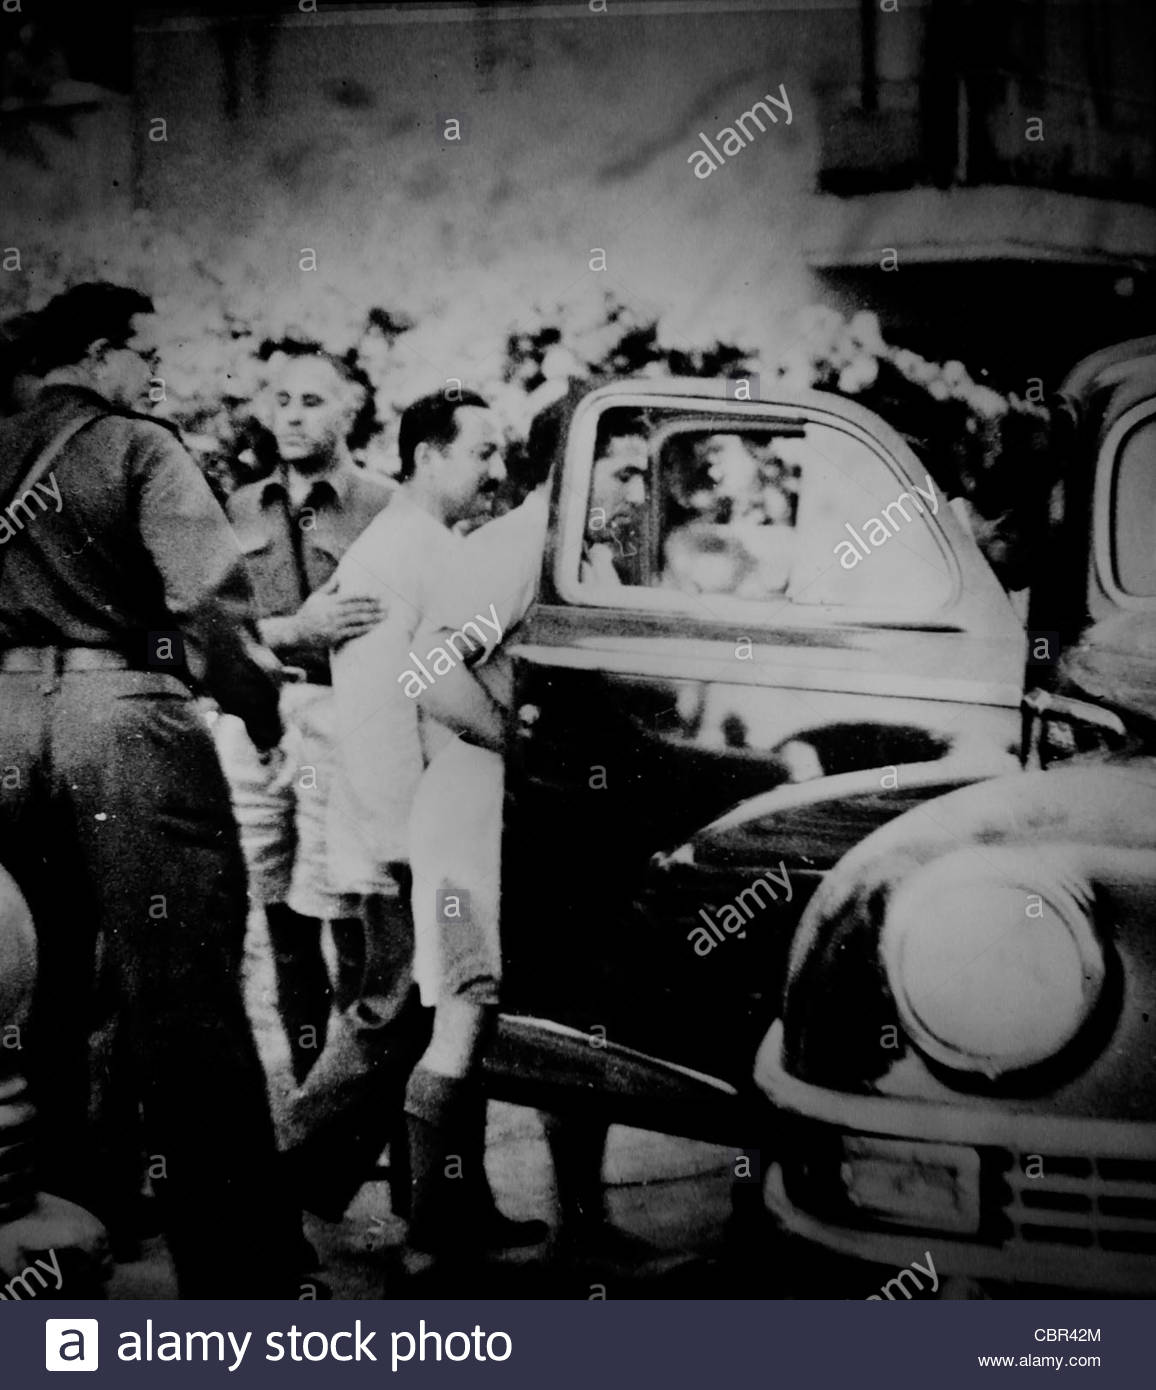 A B&W photograph depicting Arab Jaffa leaders on their way to sign the surrender agreement during the 1948 Israel - Stock Image